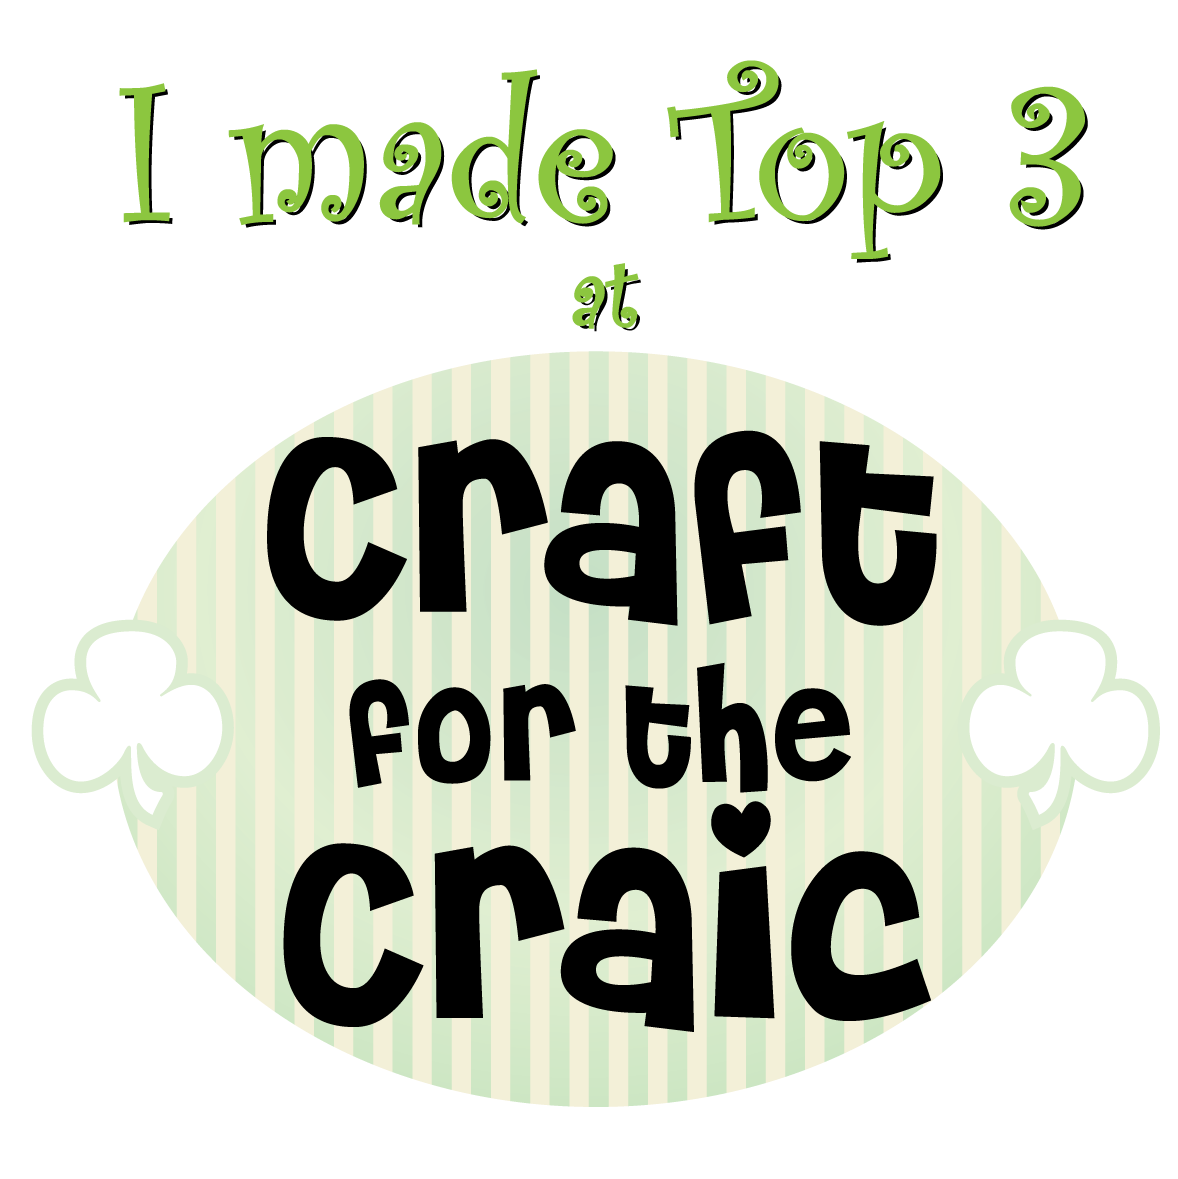 Craft for the Craic Top 3 Pick